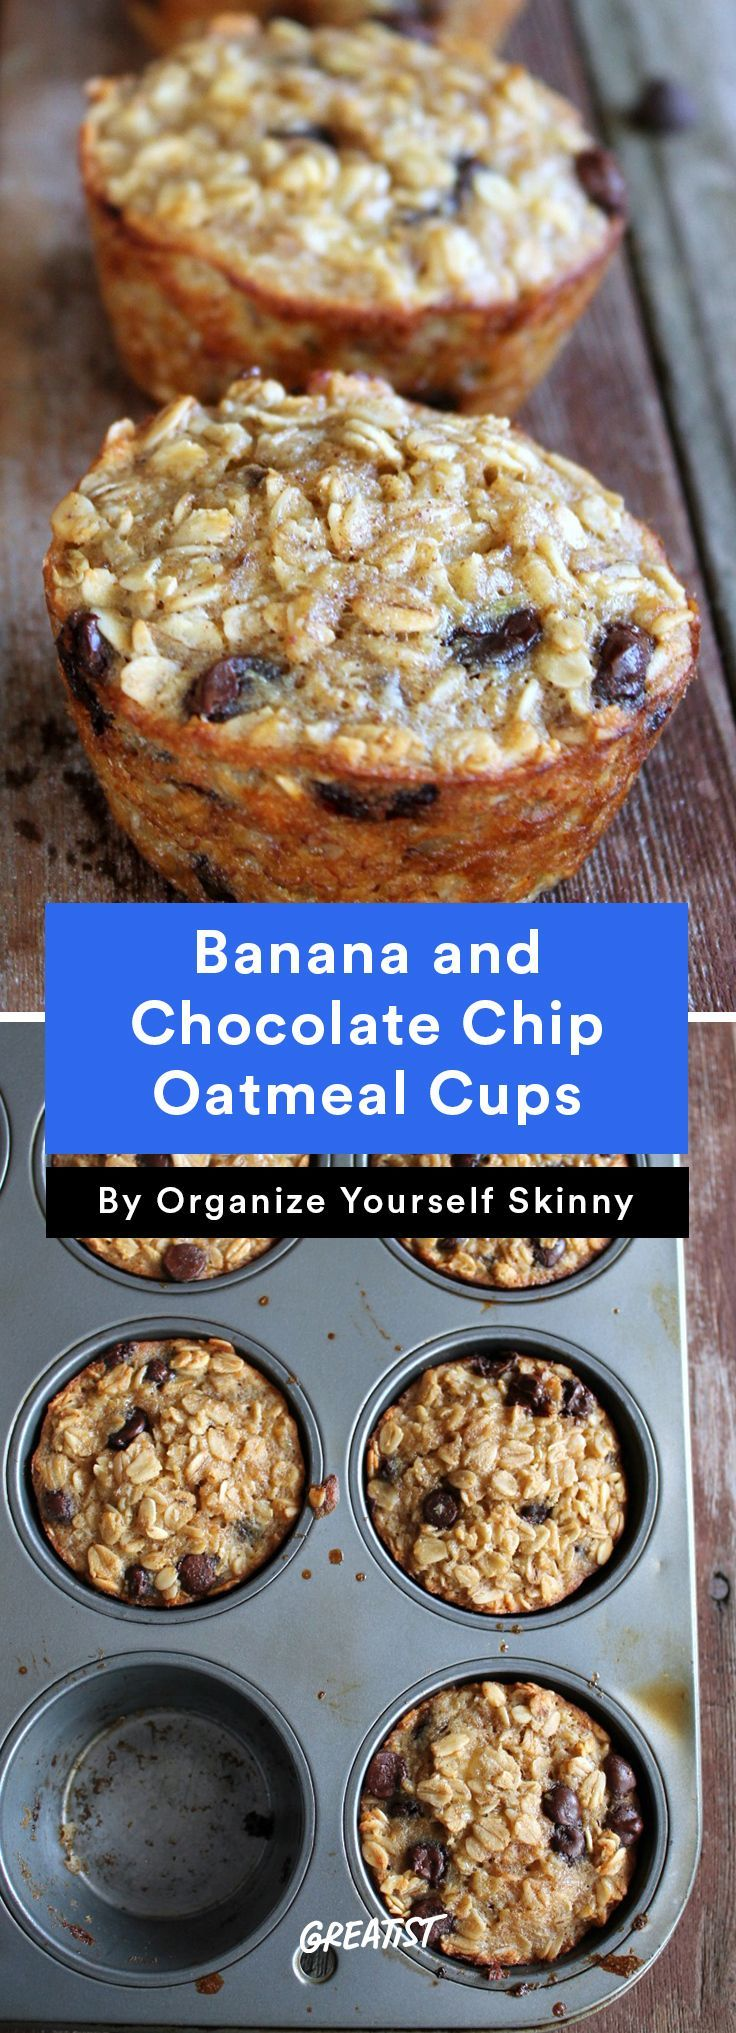 Banana and Chocolate Chip Oatmeal Cups